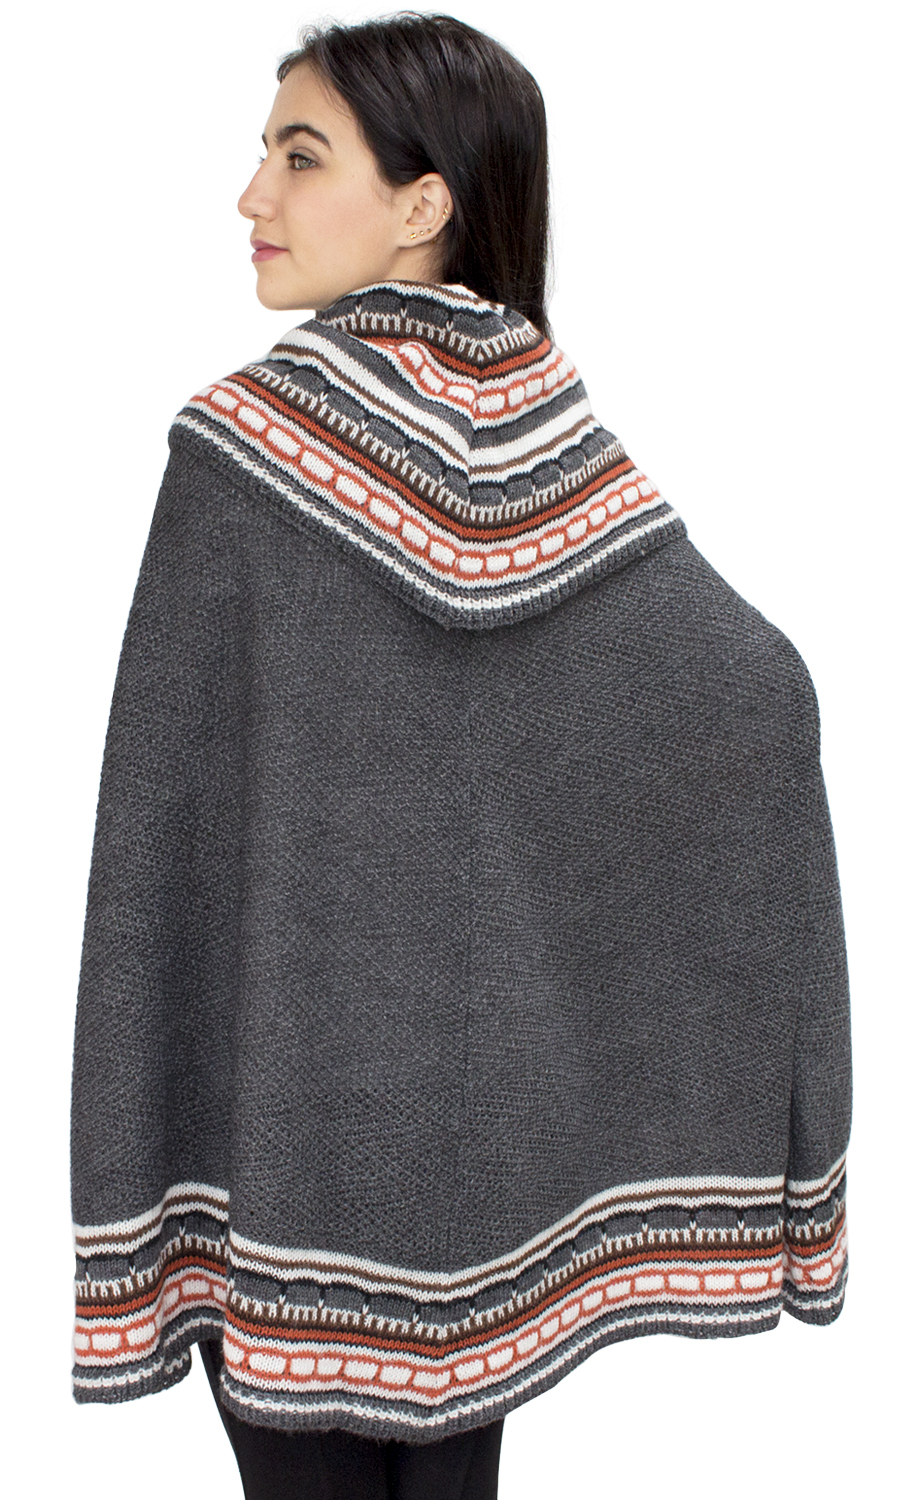 Womens-Superfine-Alpaca-Wool-Turtleneck-Knitted-Poncho-Cape-One-Size